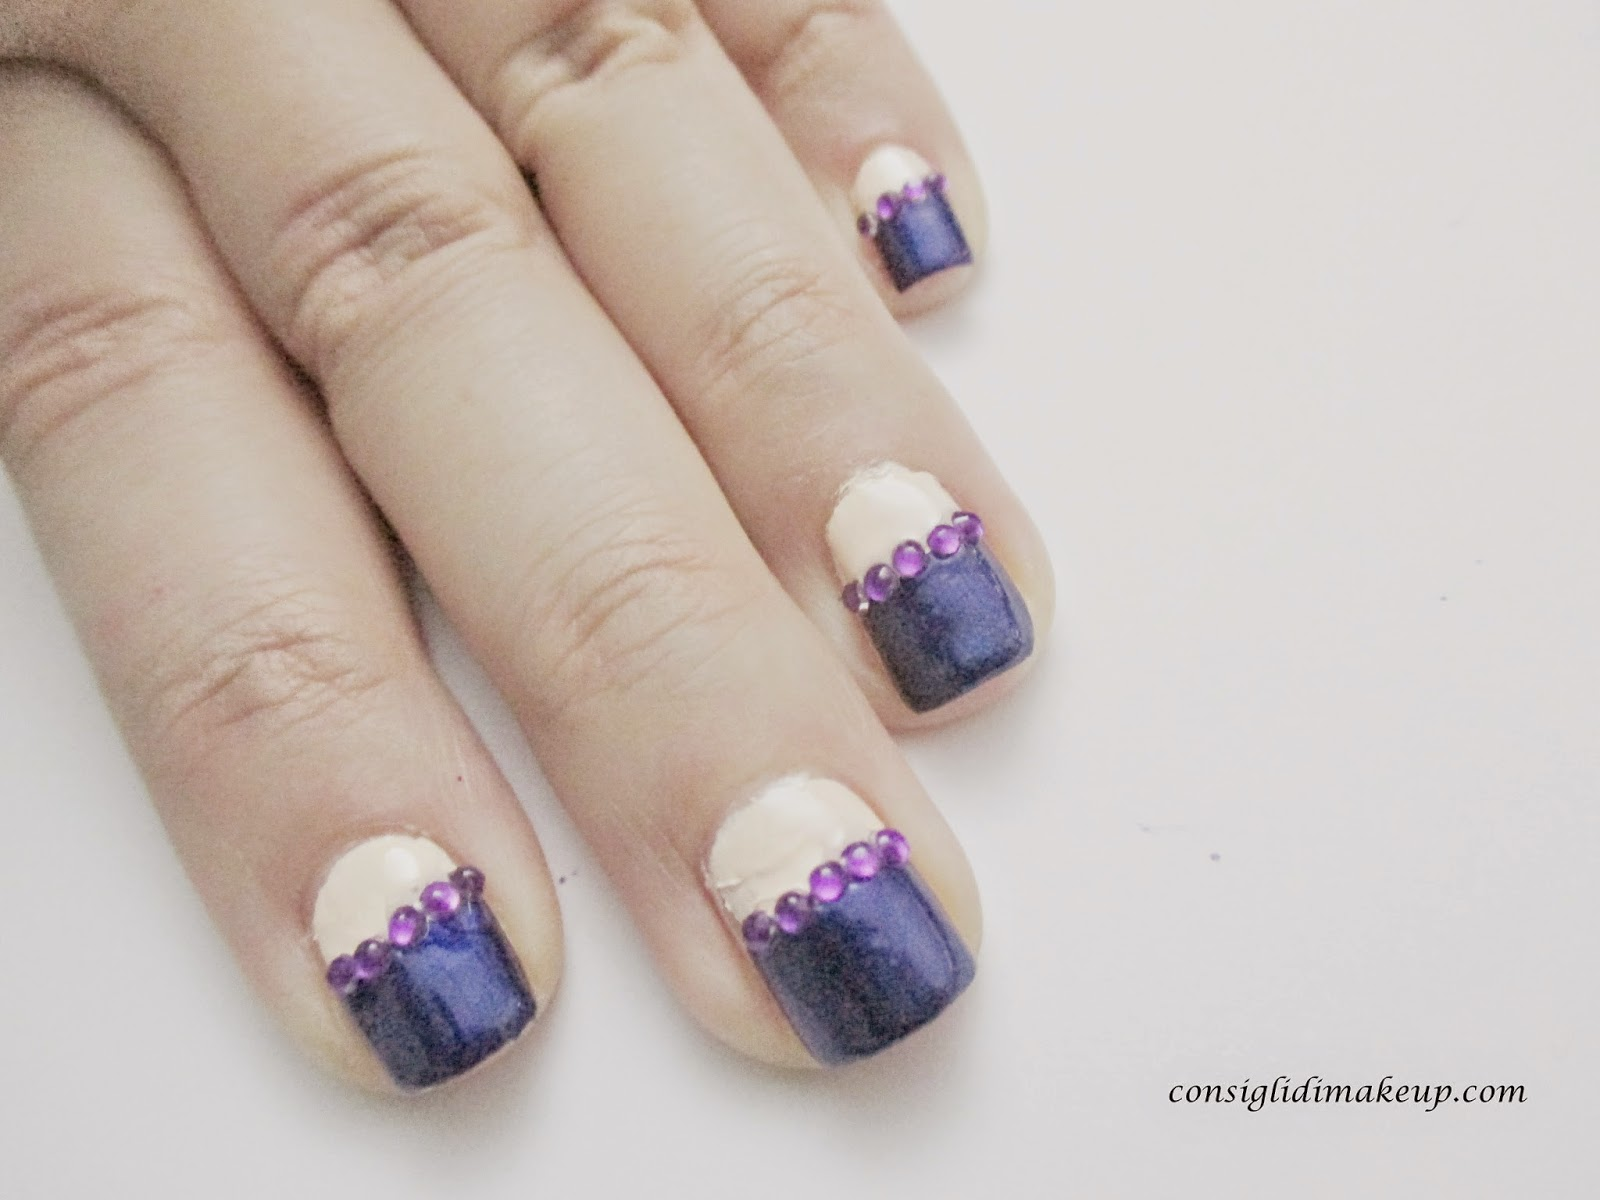 Nail art: Half moon&strass